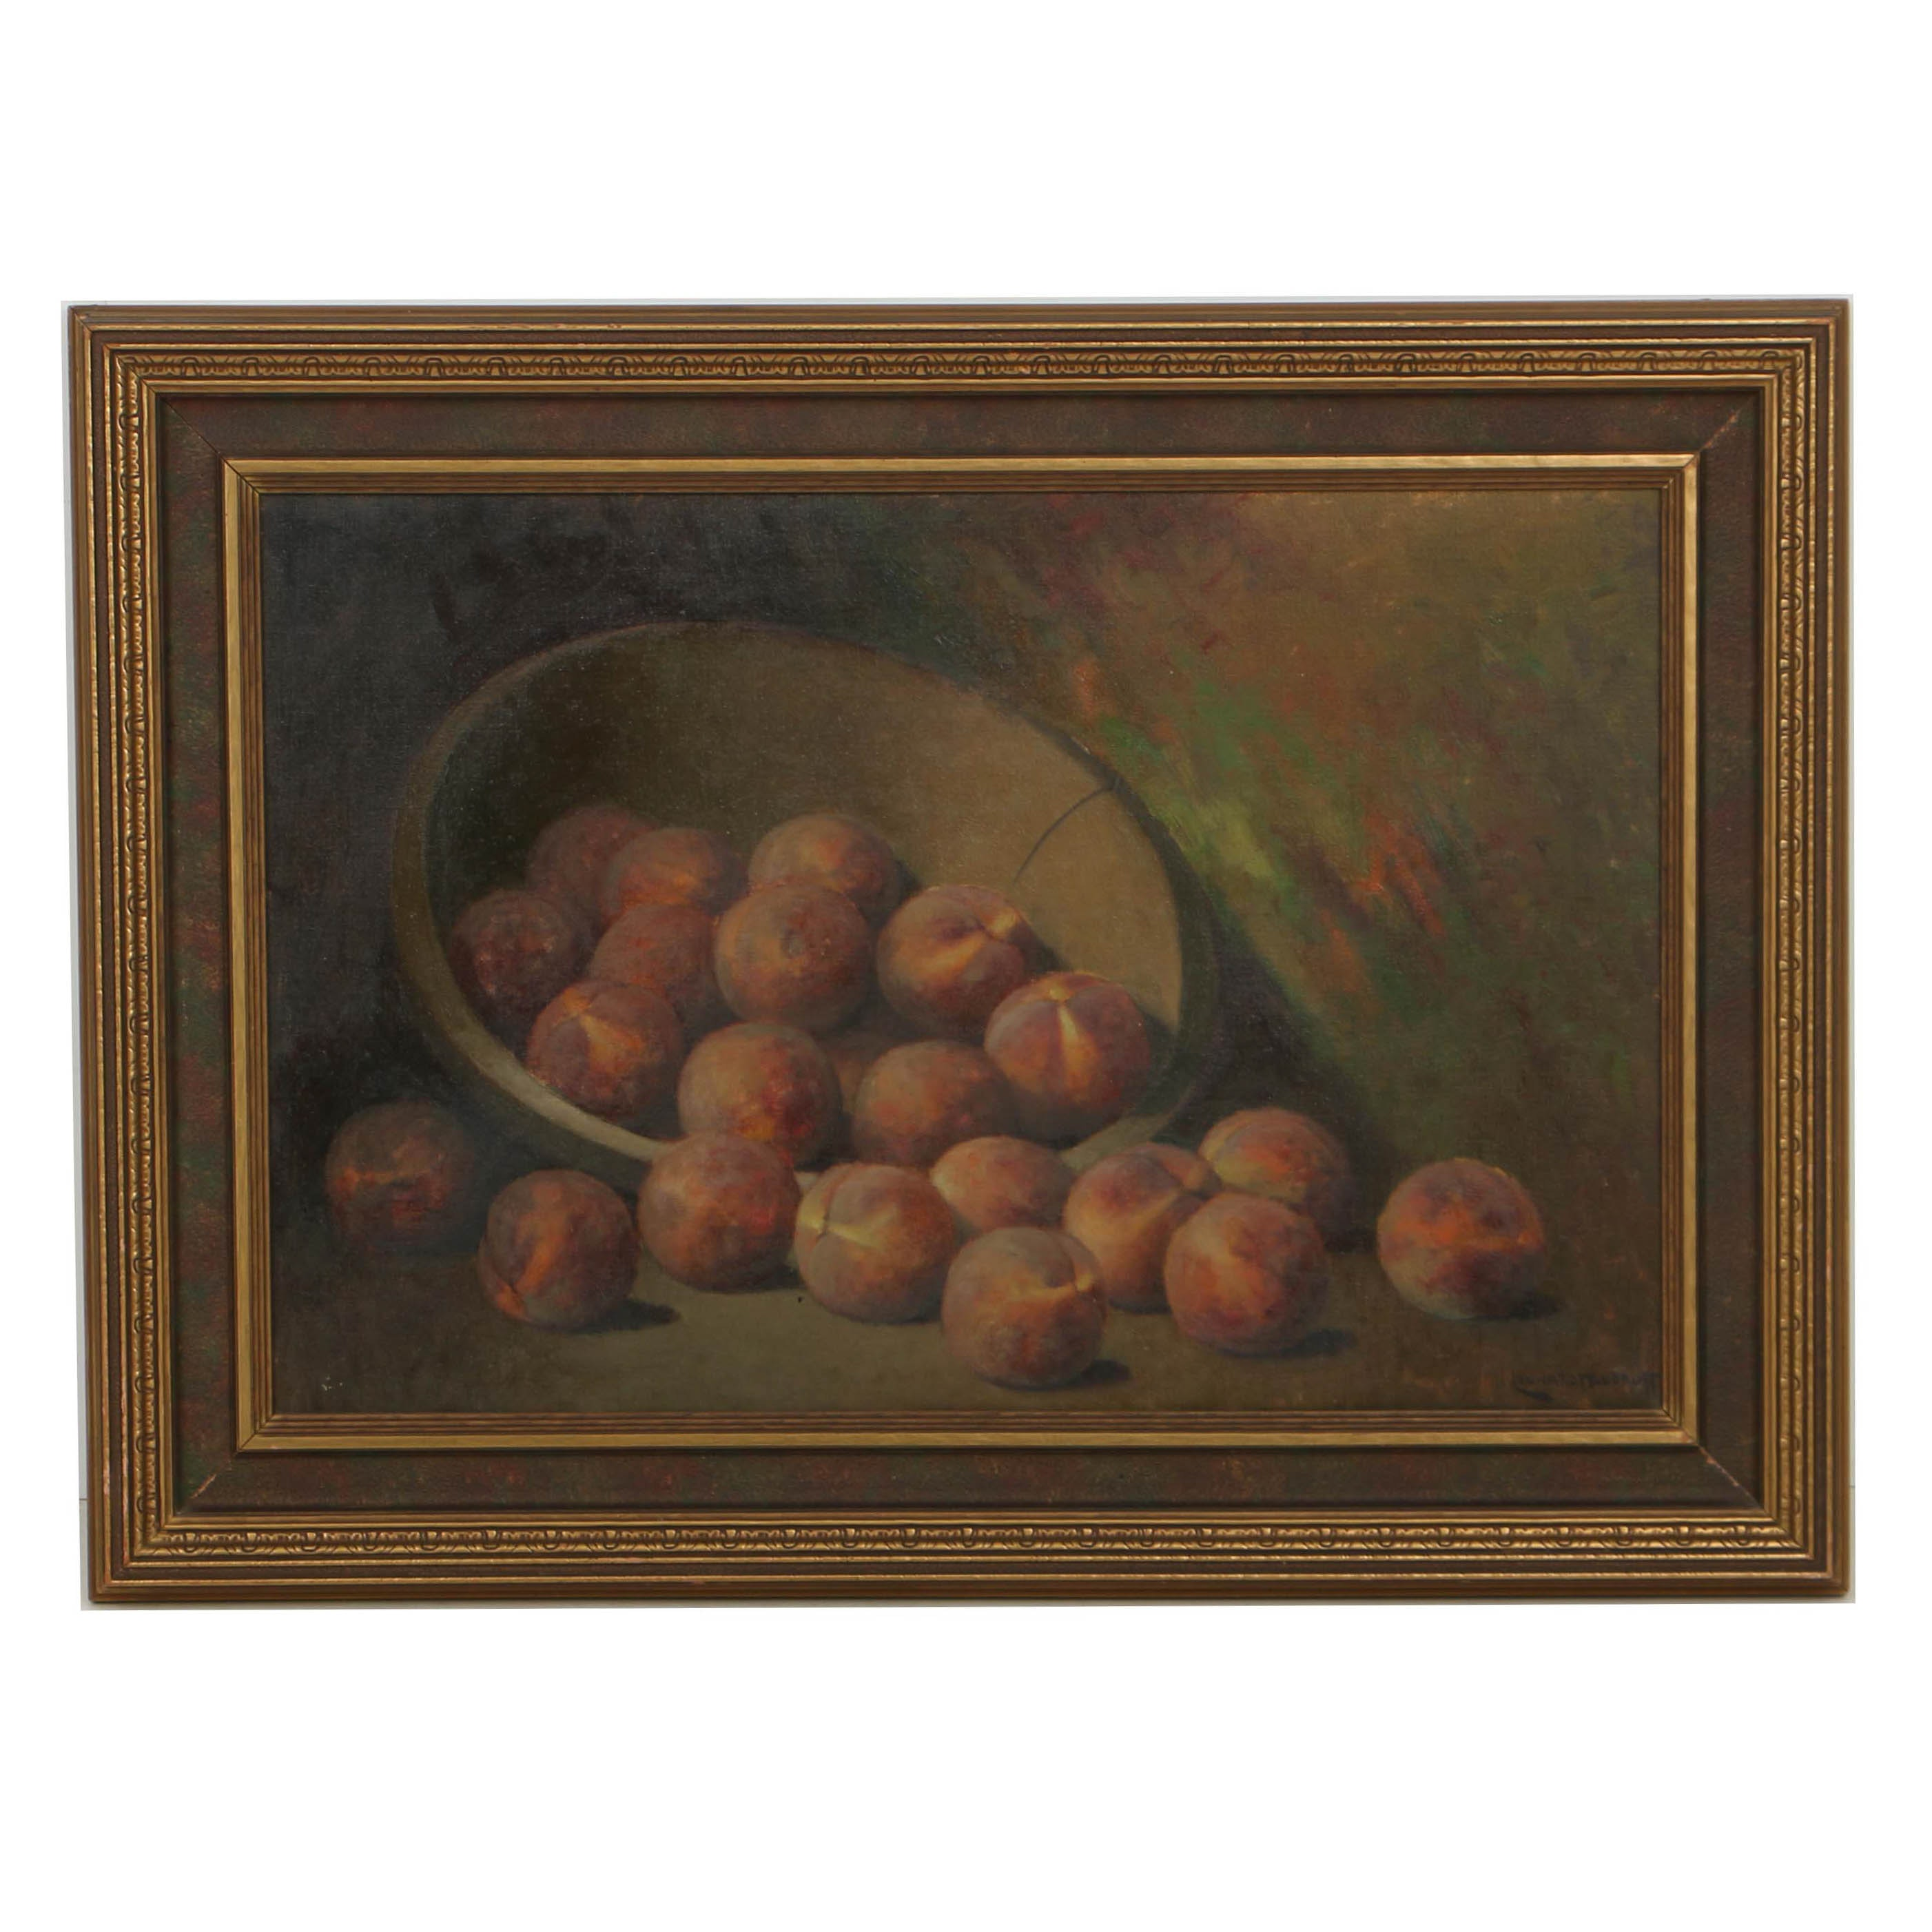 Leonard Woodruff Oil Painting on Canvas Still Life with Peaches